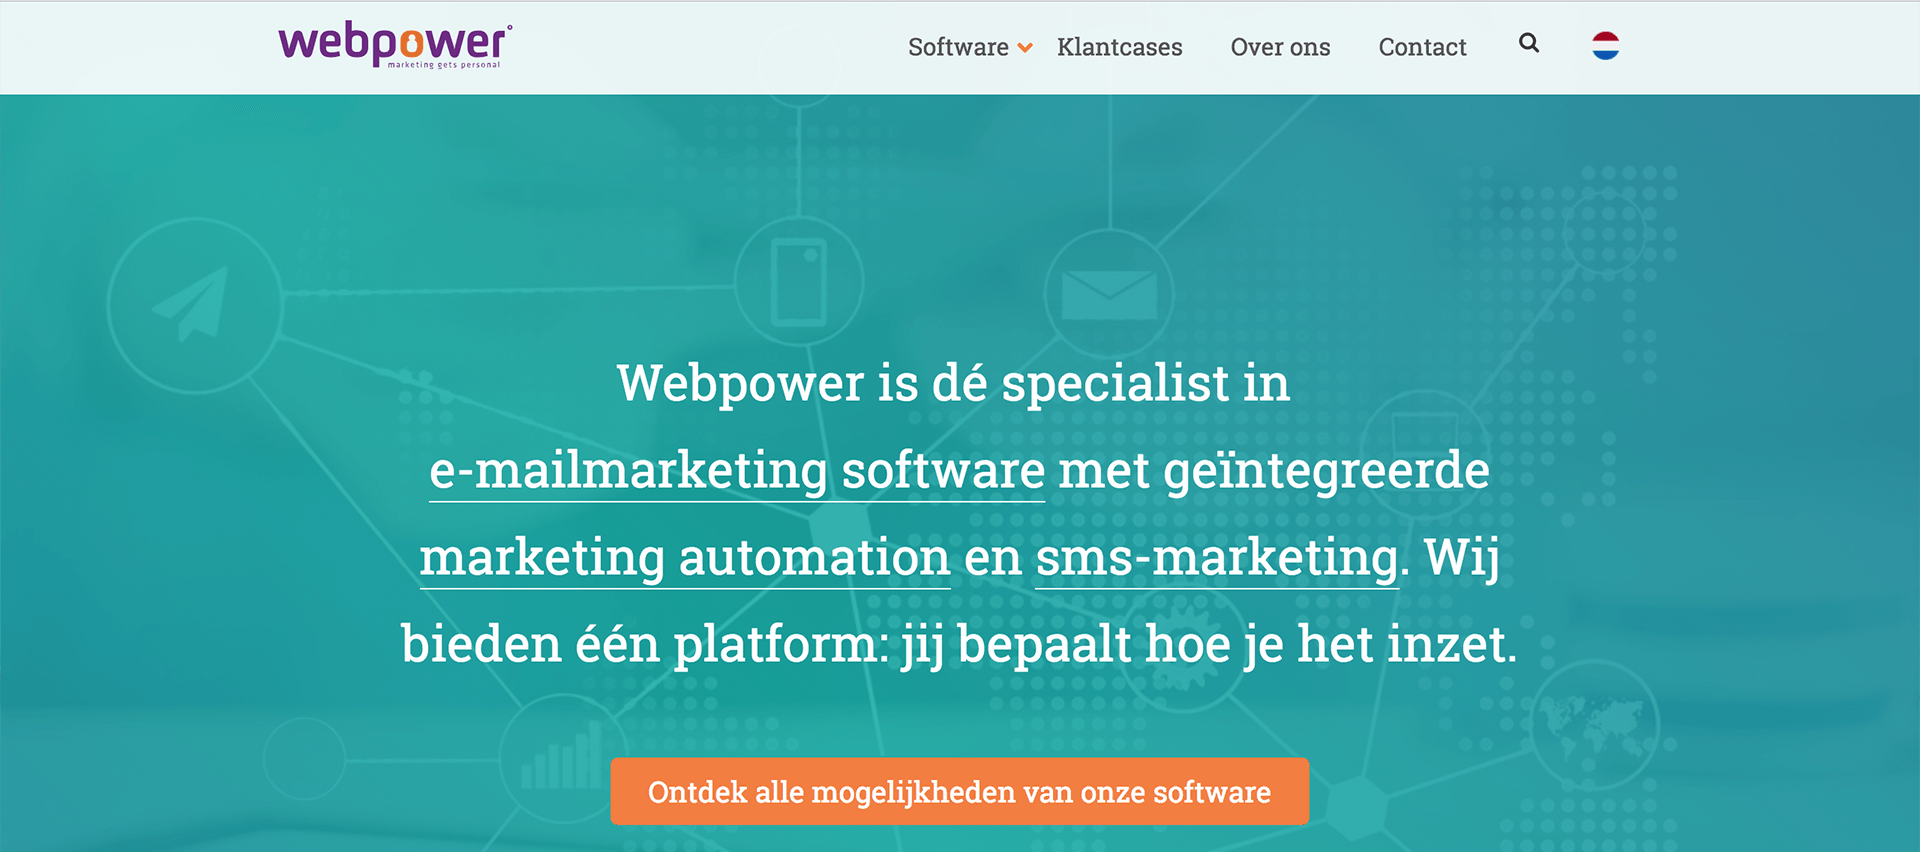 Webpower1screen